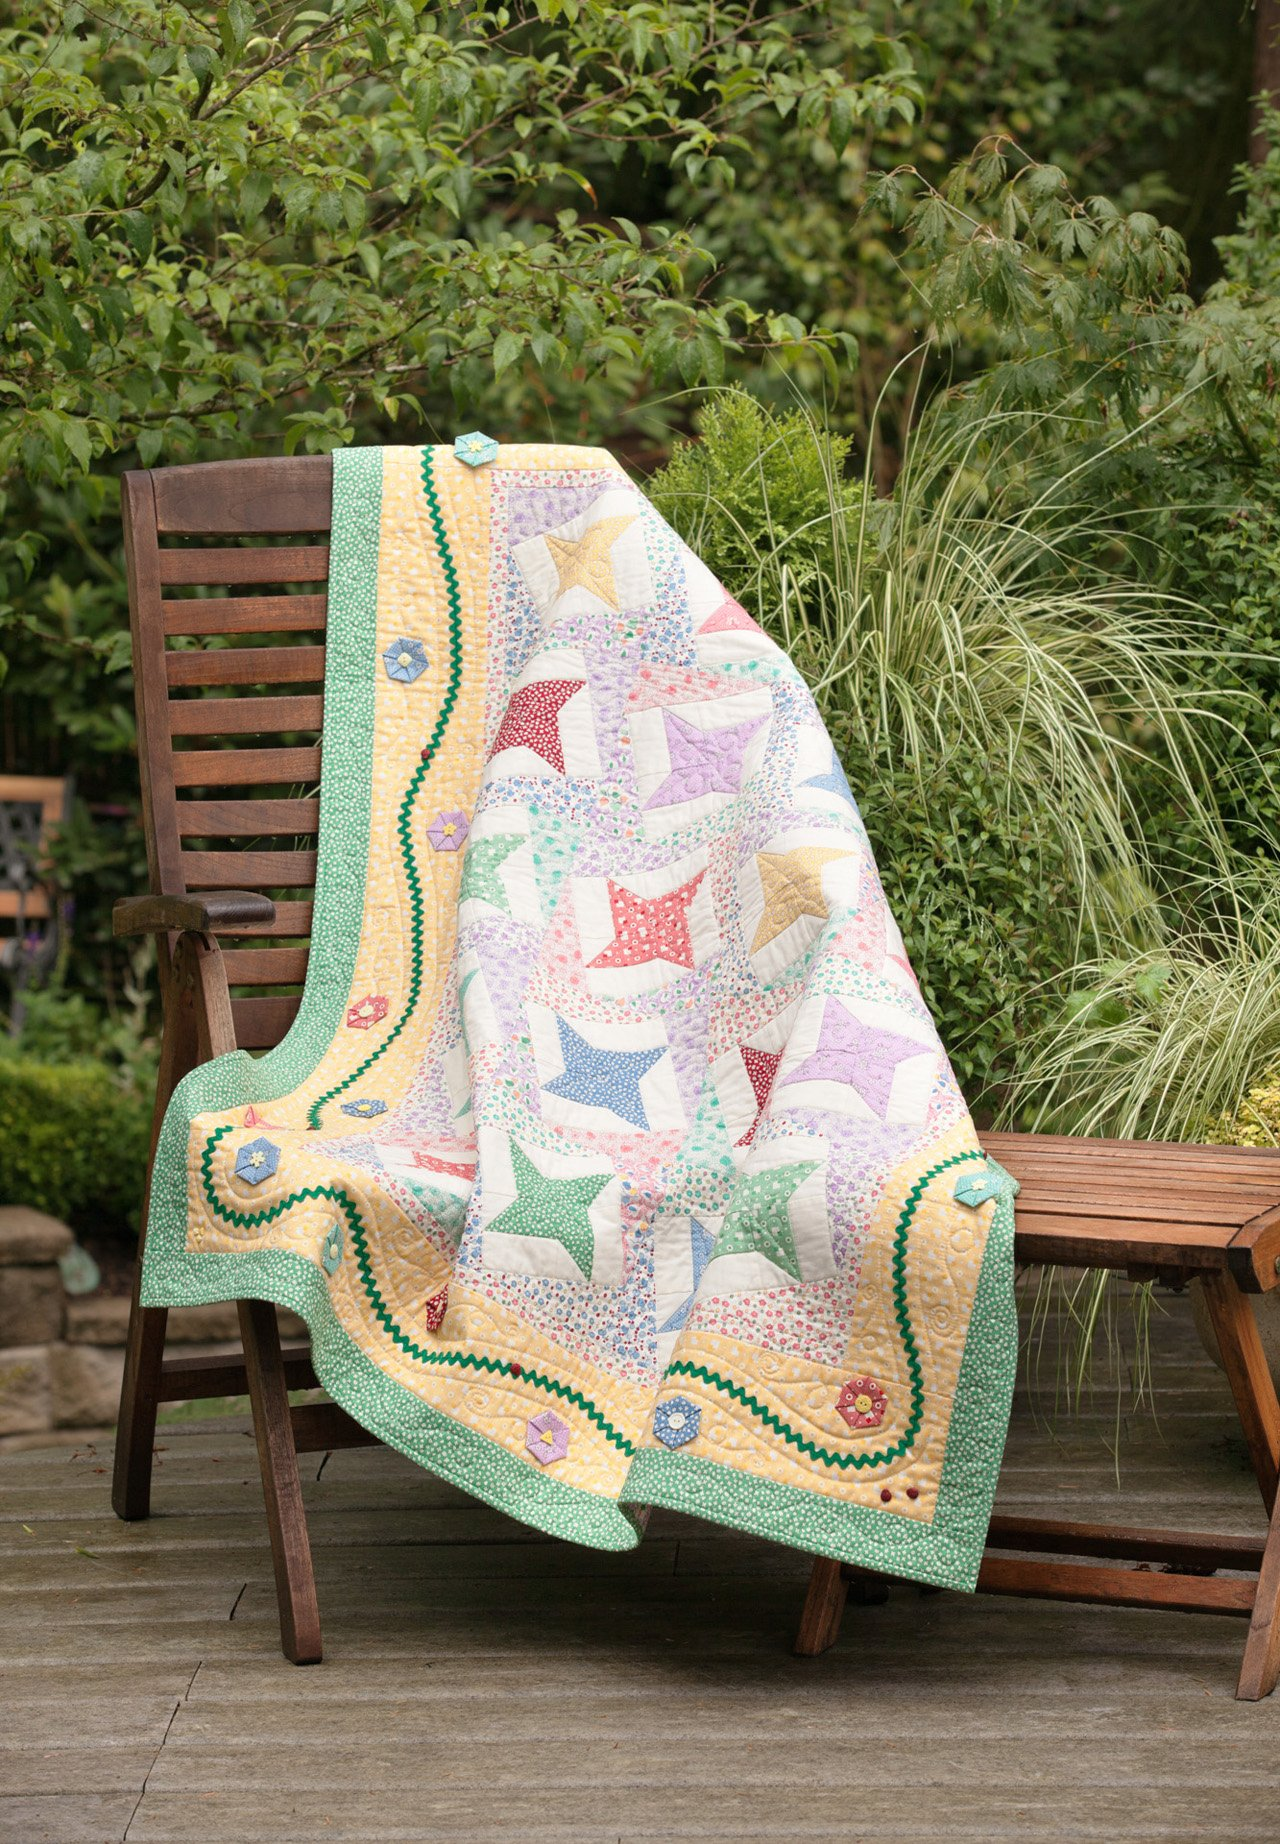 Fast, Fusible Flower Quilts: Nancy Mahoney: 9781604680393: Amazon ... : fusible quilting - Adamdwight.com